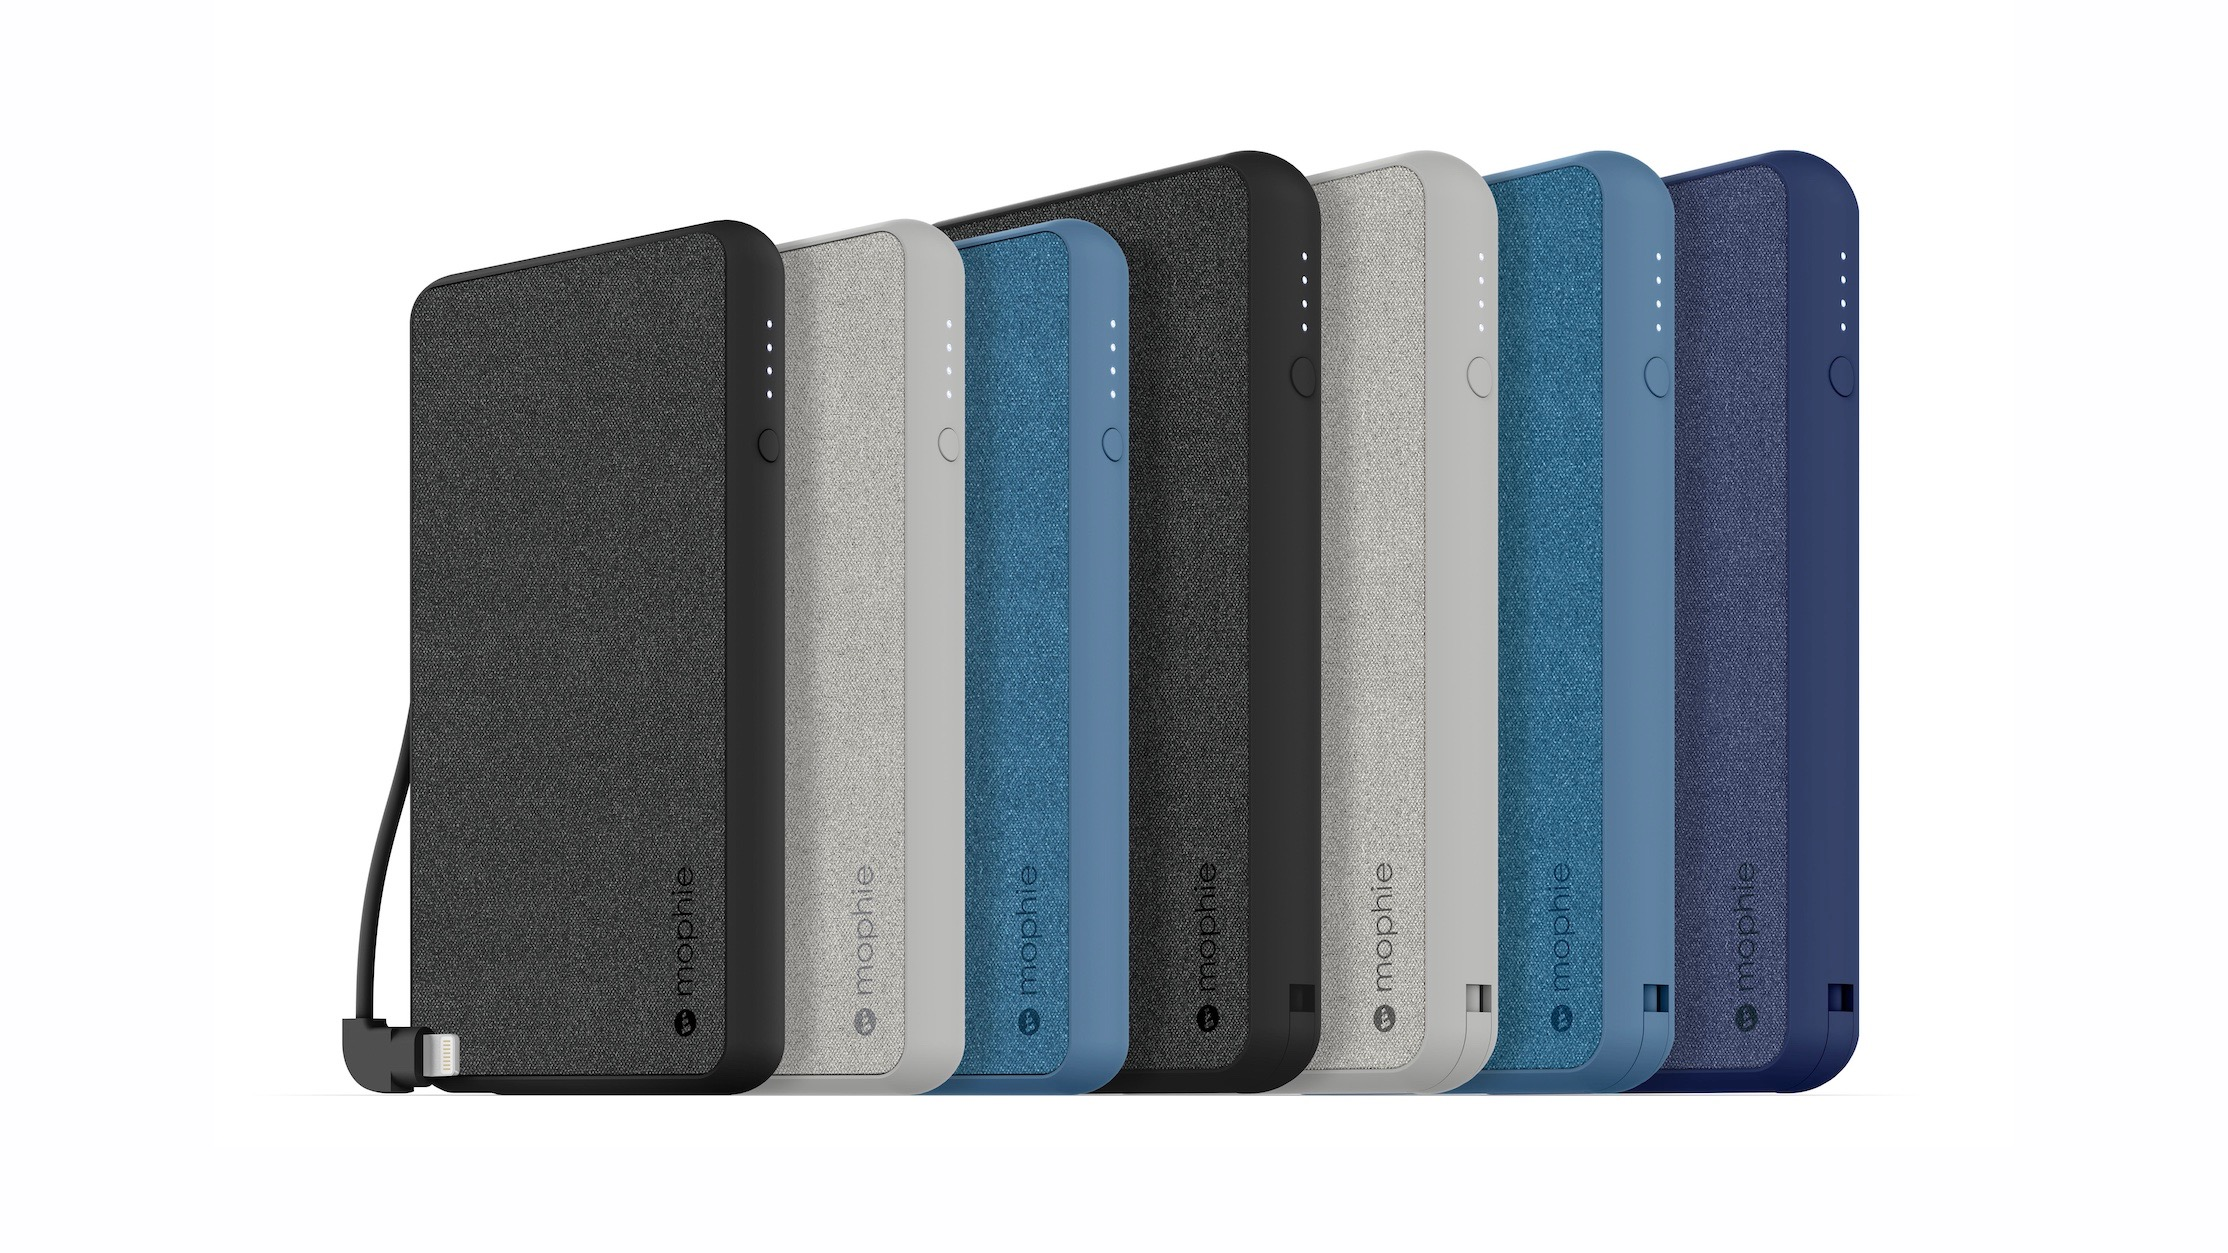 mophie expands lightning battery lineup with four new mfi power banks